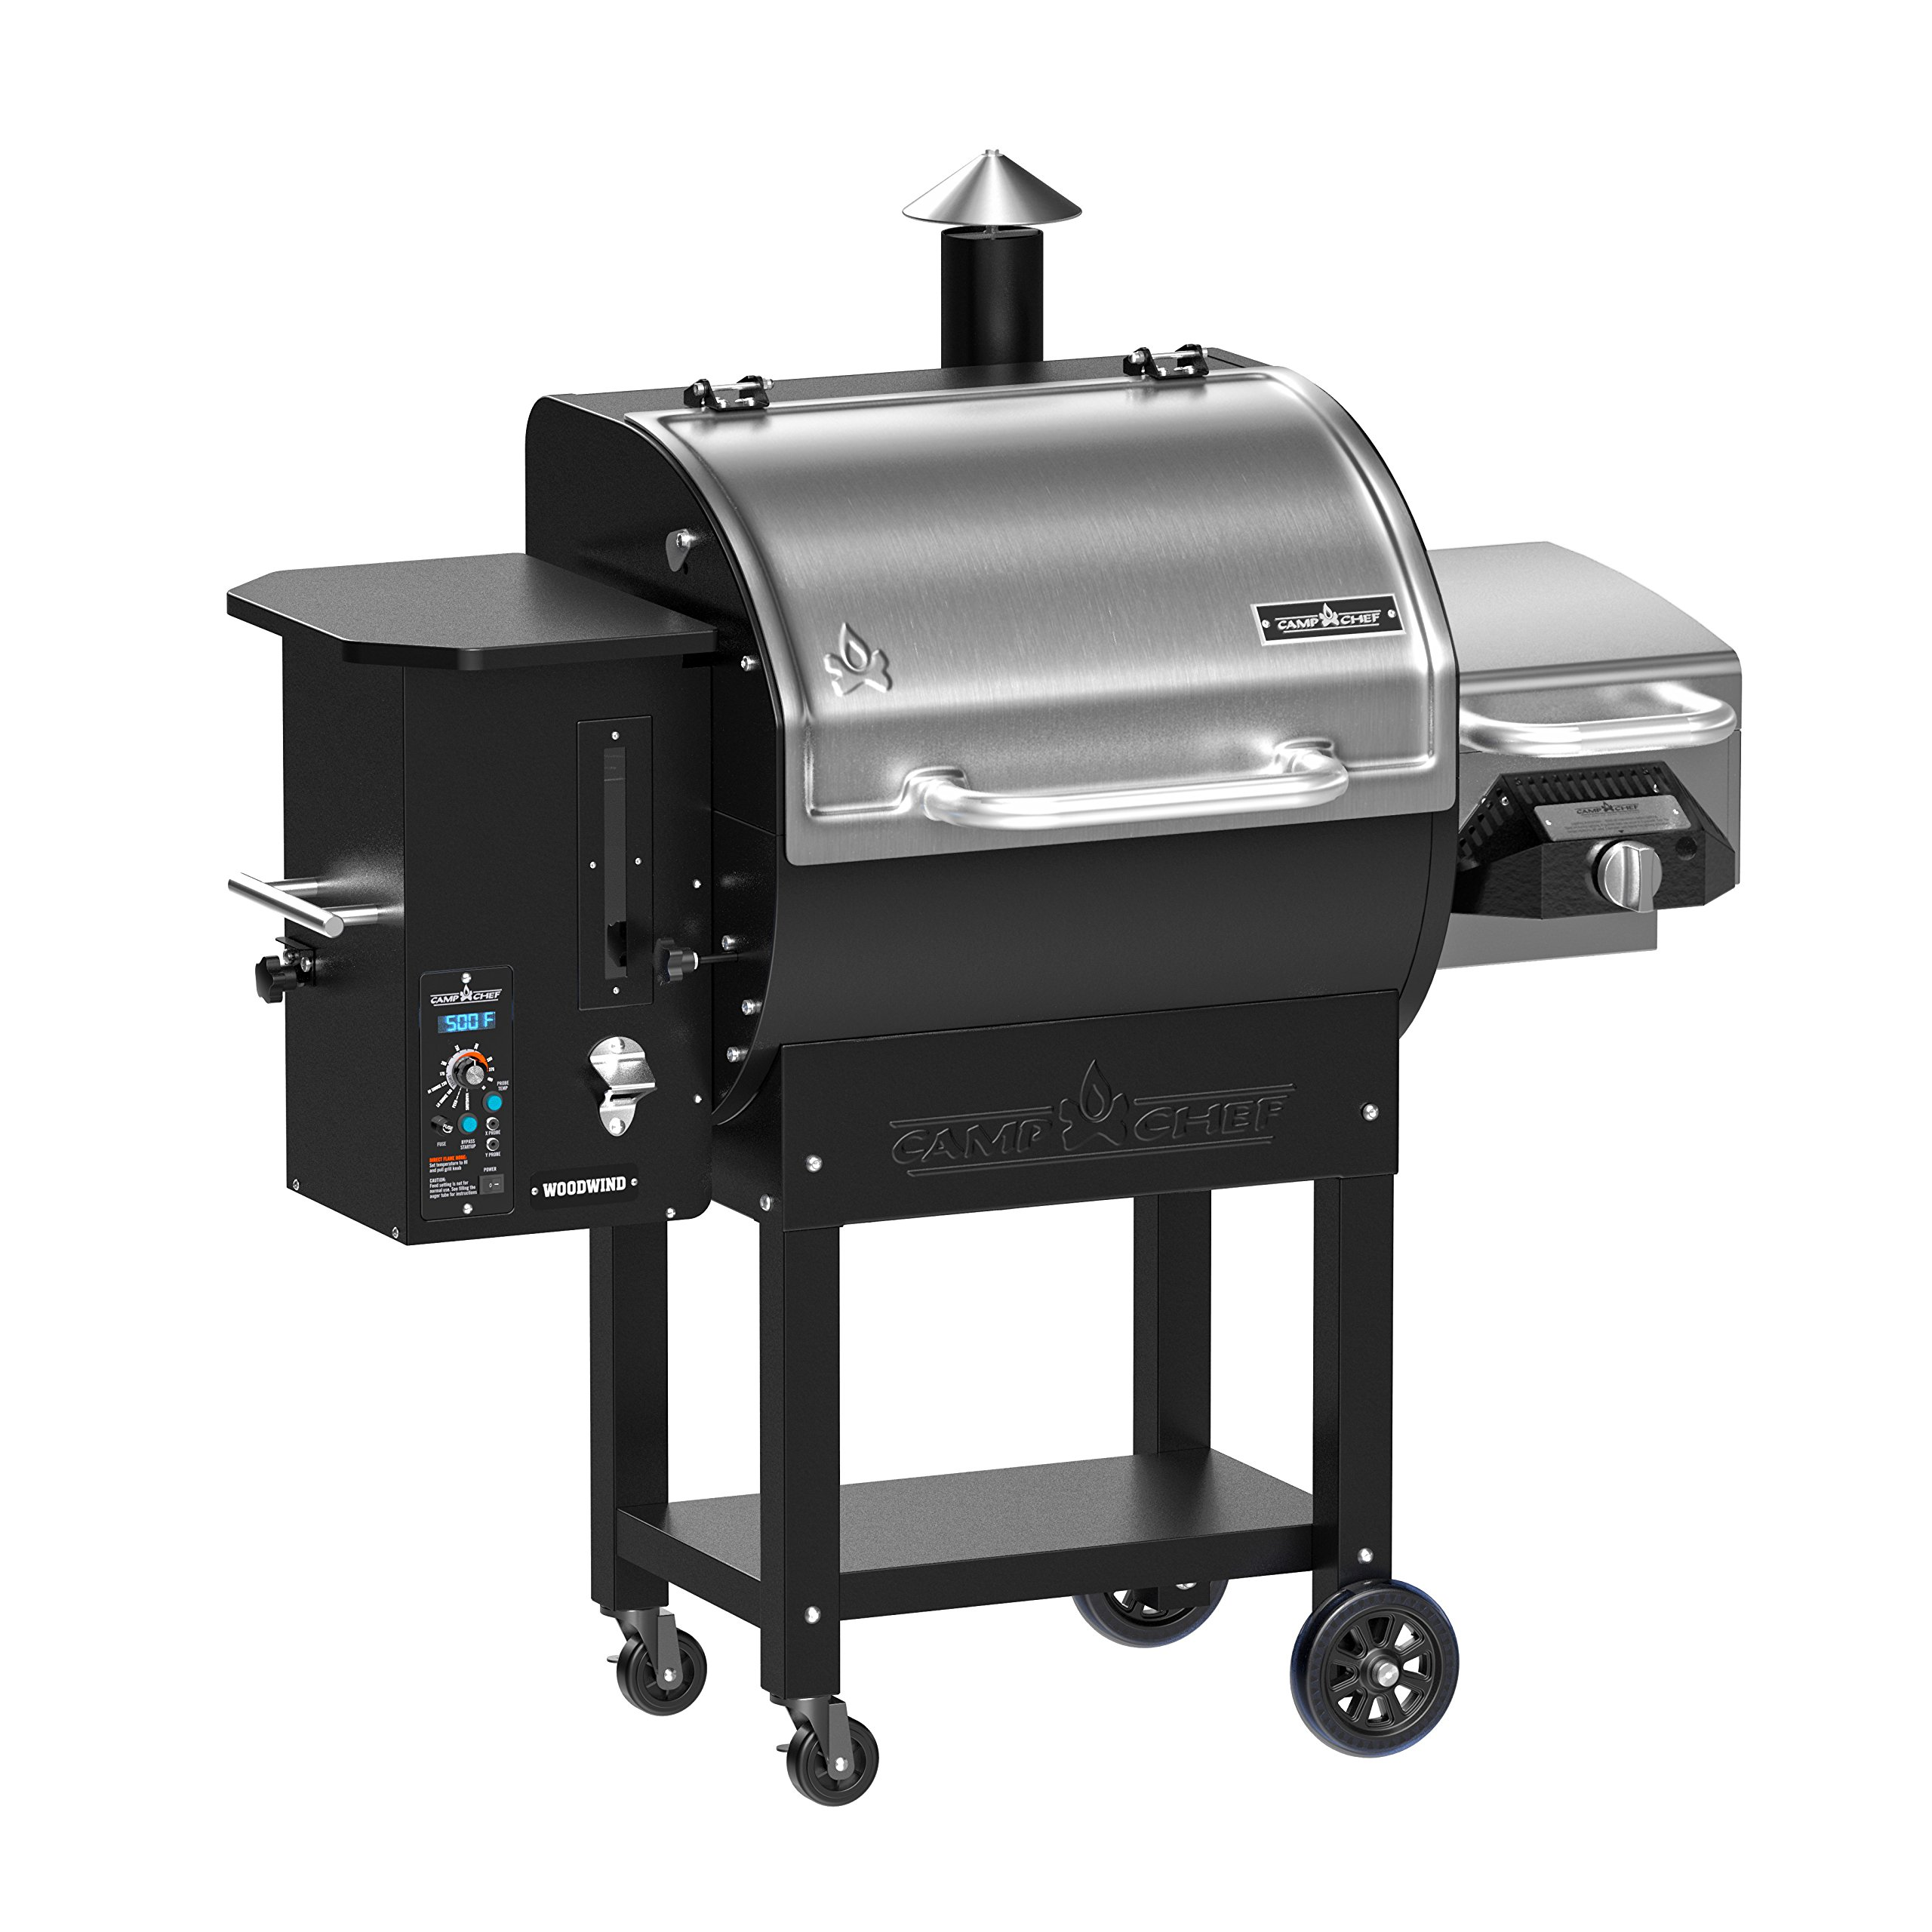 Camp Chef Woodwind Pellet Grill with Sear Box - Smart Smoke Technology - Ash Cleanout System (Woodwind SG) by Camp Chef (Image #2)